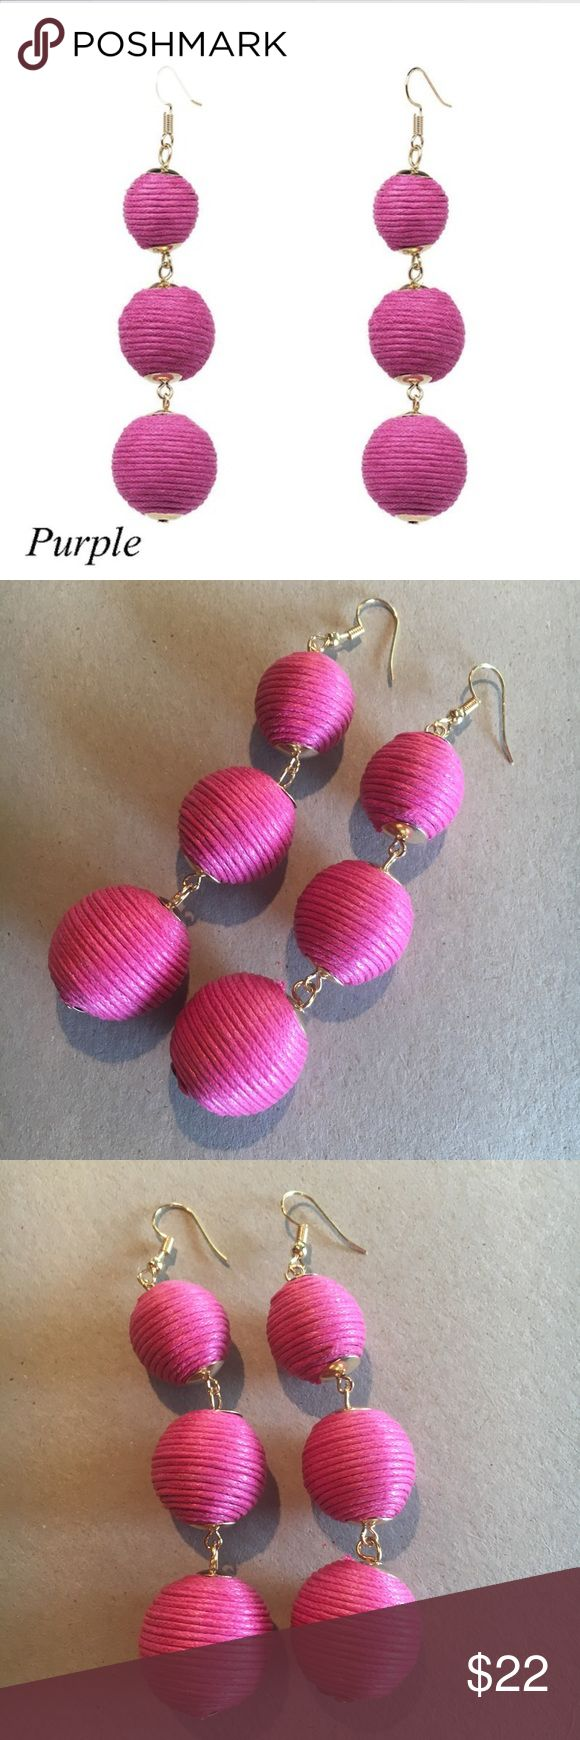 """As seen on Today w/KathiLee & Hoda PomPom earrings Fun Pom Pom thread wrapped 3 tiered ball earrings in HOT PINK.  (Photo labeled as purple but true color is hot pink). This item is a new Boutique item in original packaging but without tags.  Please review all photos and comments prior to purchasing.  Material: Gold plated alloy, Weight: 20g, Dimensions: Approx 3.75""""x.75"""".  Price is firm on Boutique items unless bundled Mimi's Boutique Jewelry Earrings"""